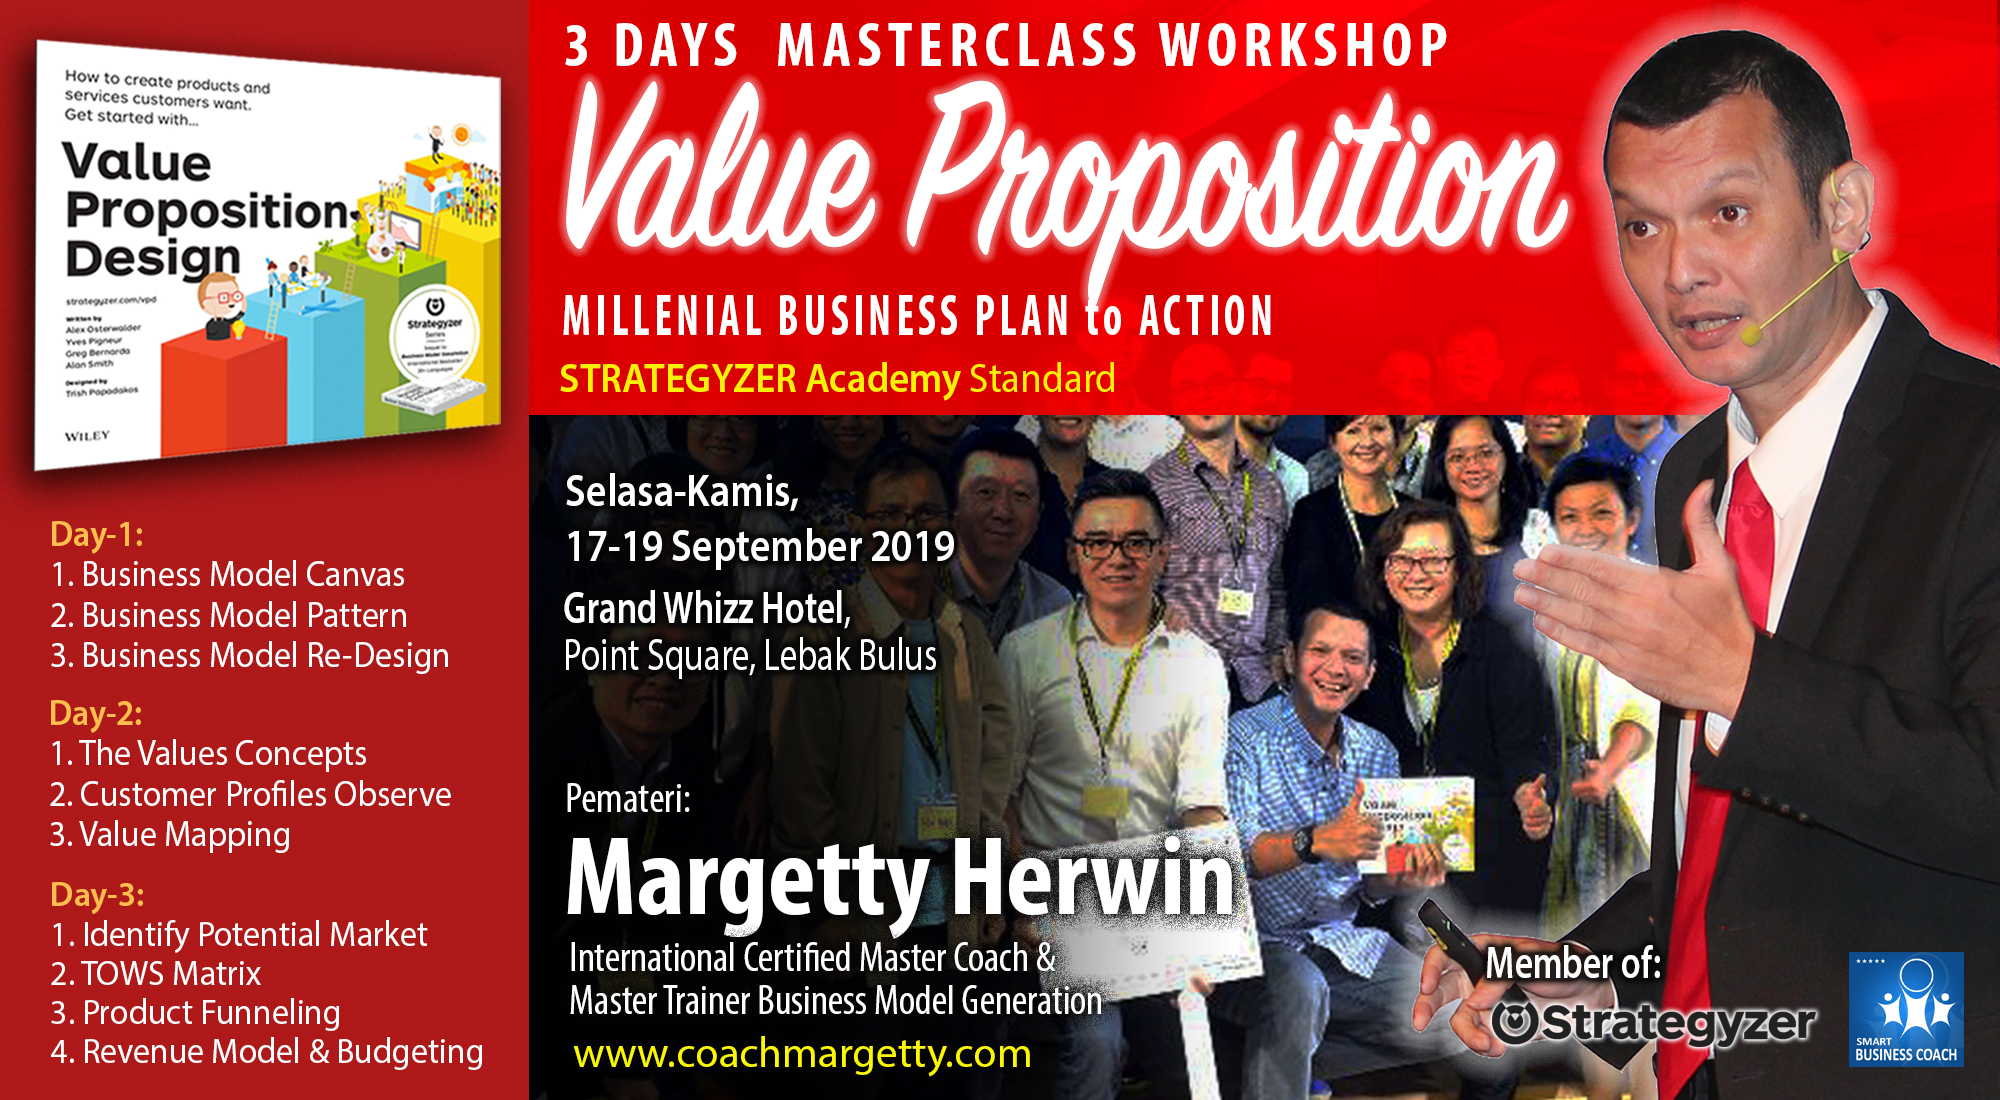 3 Days Masterclass Value Proposition (Business Plan to Action)